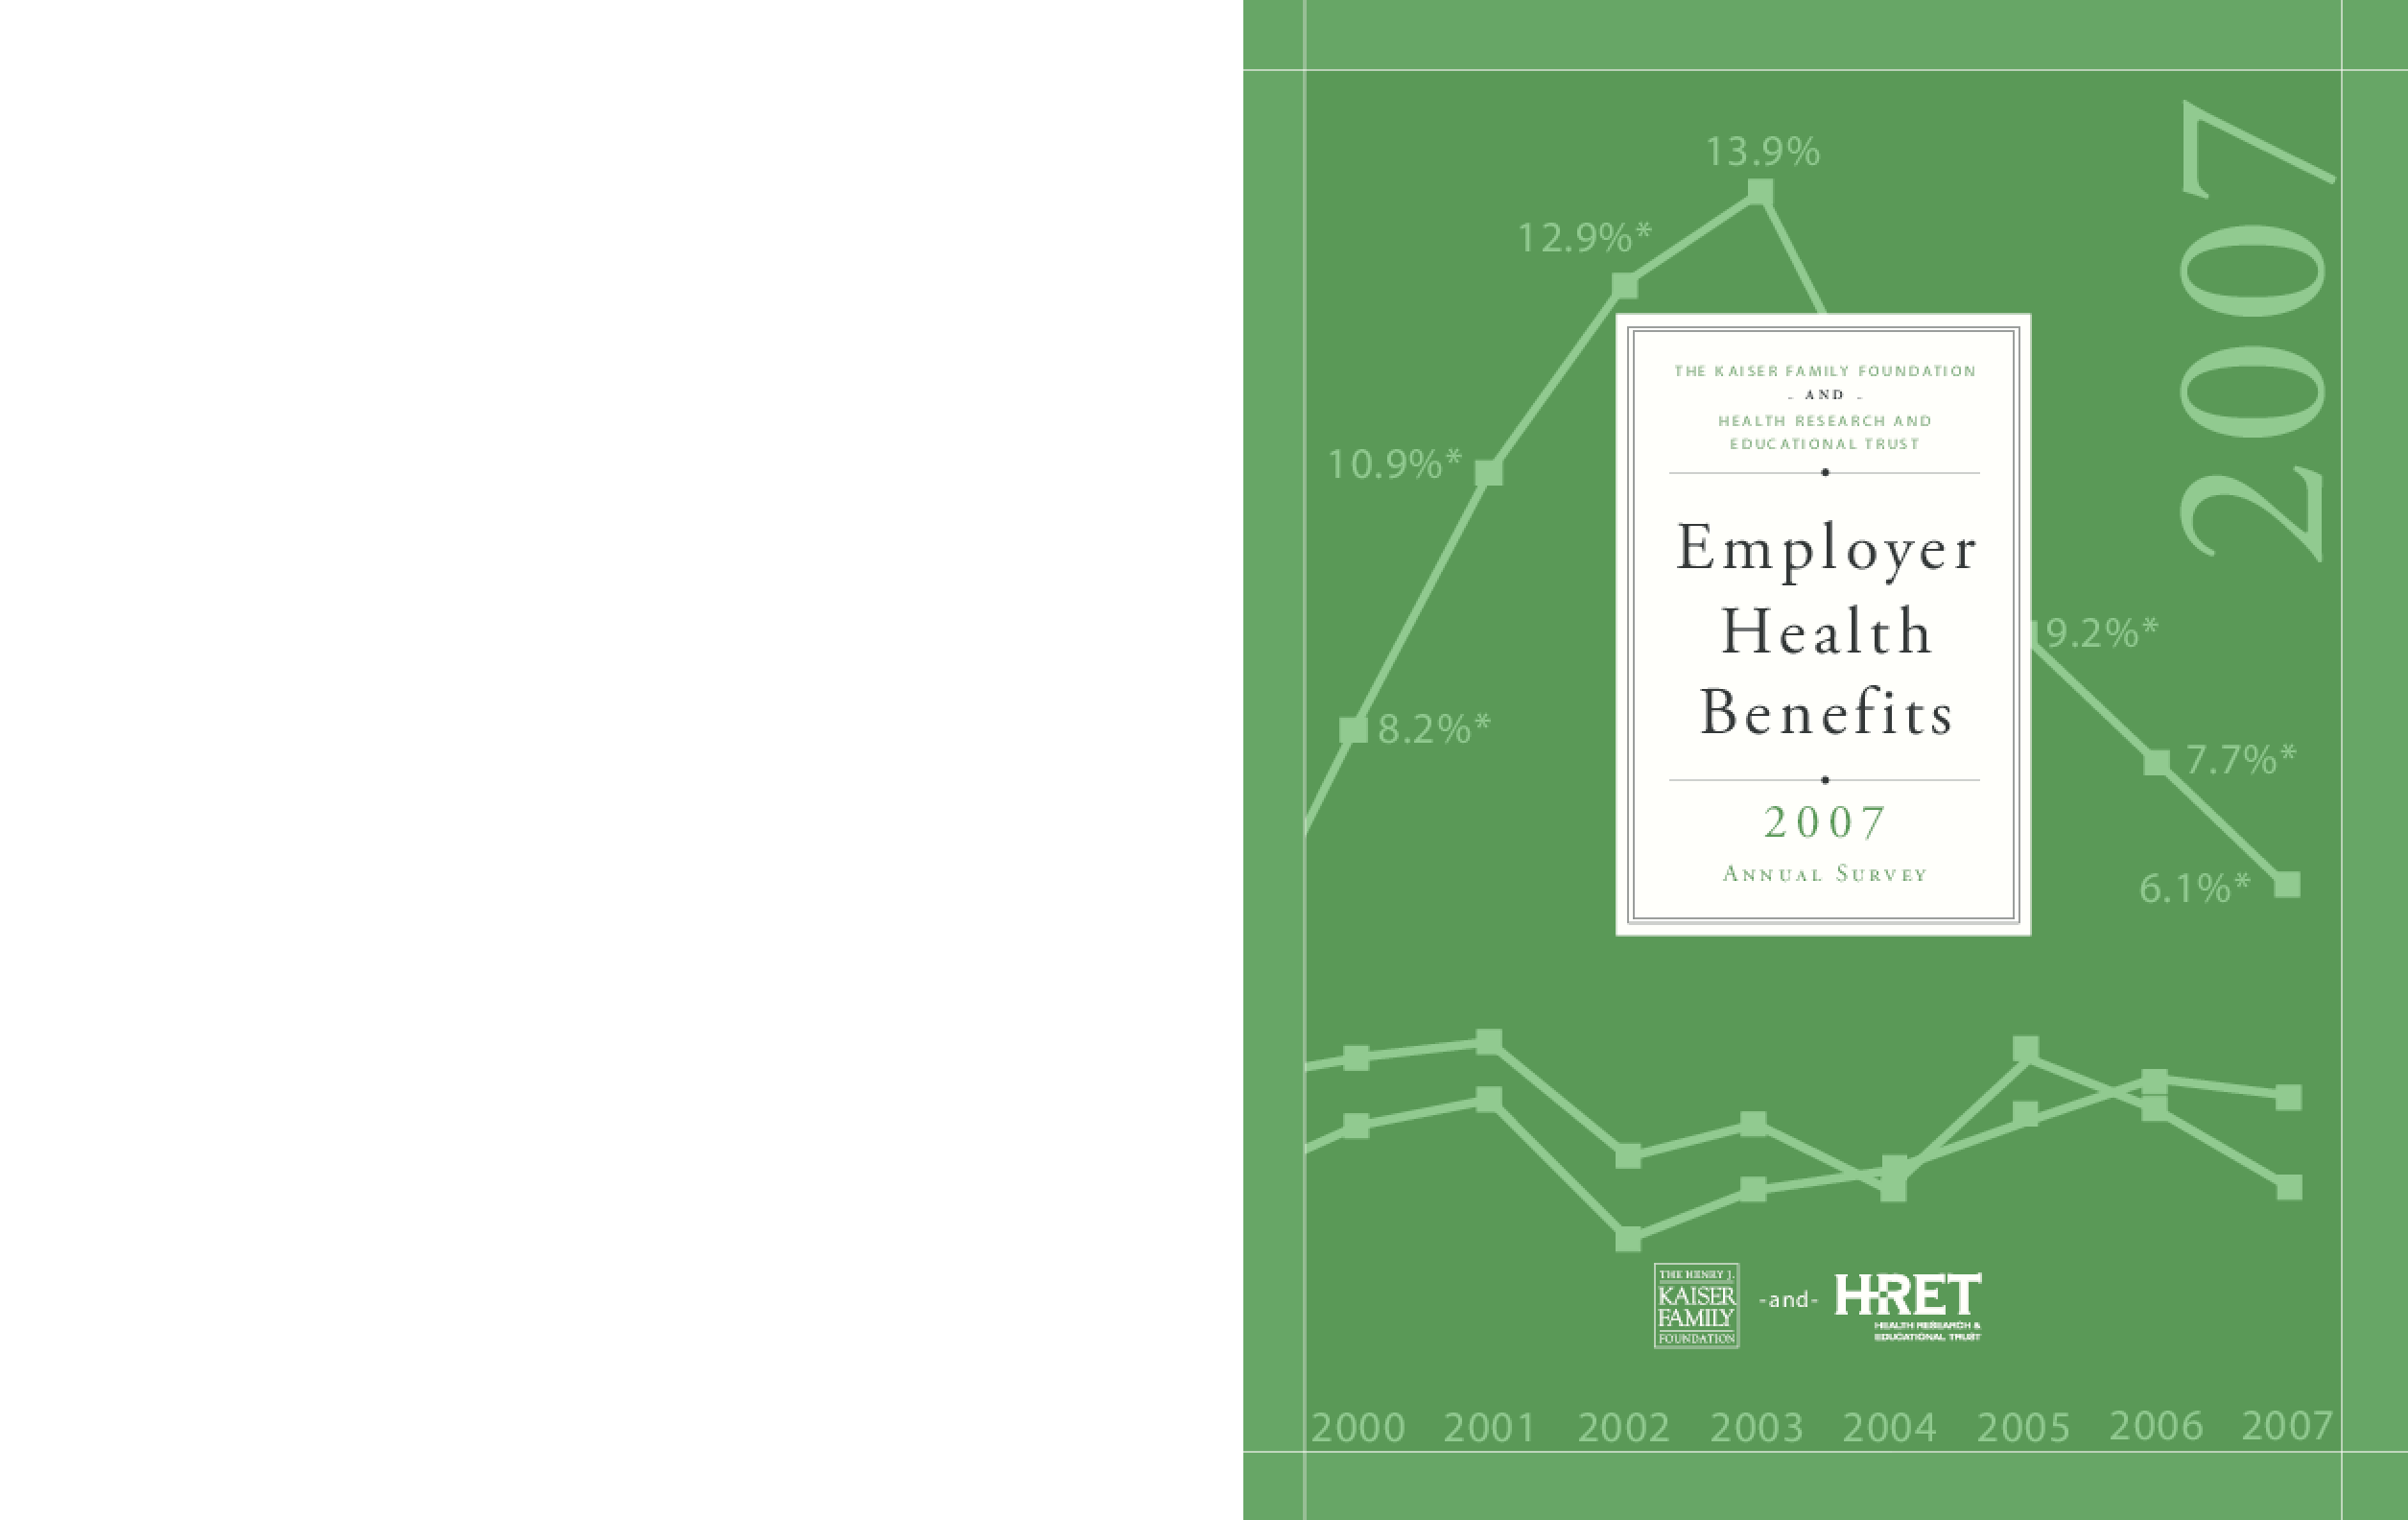 Employer Health Benefits: 2007 Annual Survey